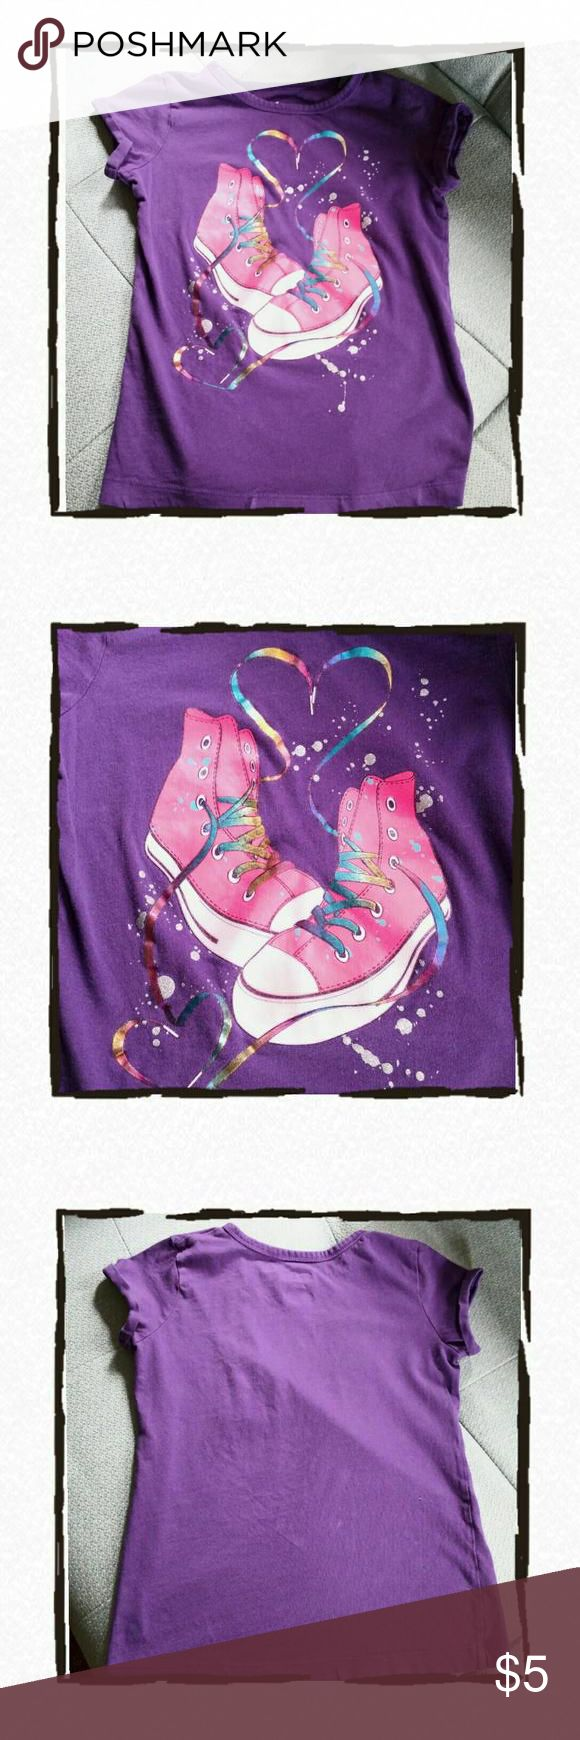 Dance Sneakers Tee Purple tee with screen print off pink high this with rainbow laces and glitter!  Roll sleeves Large 10/12. Dresses